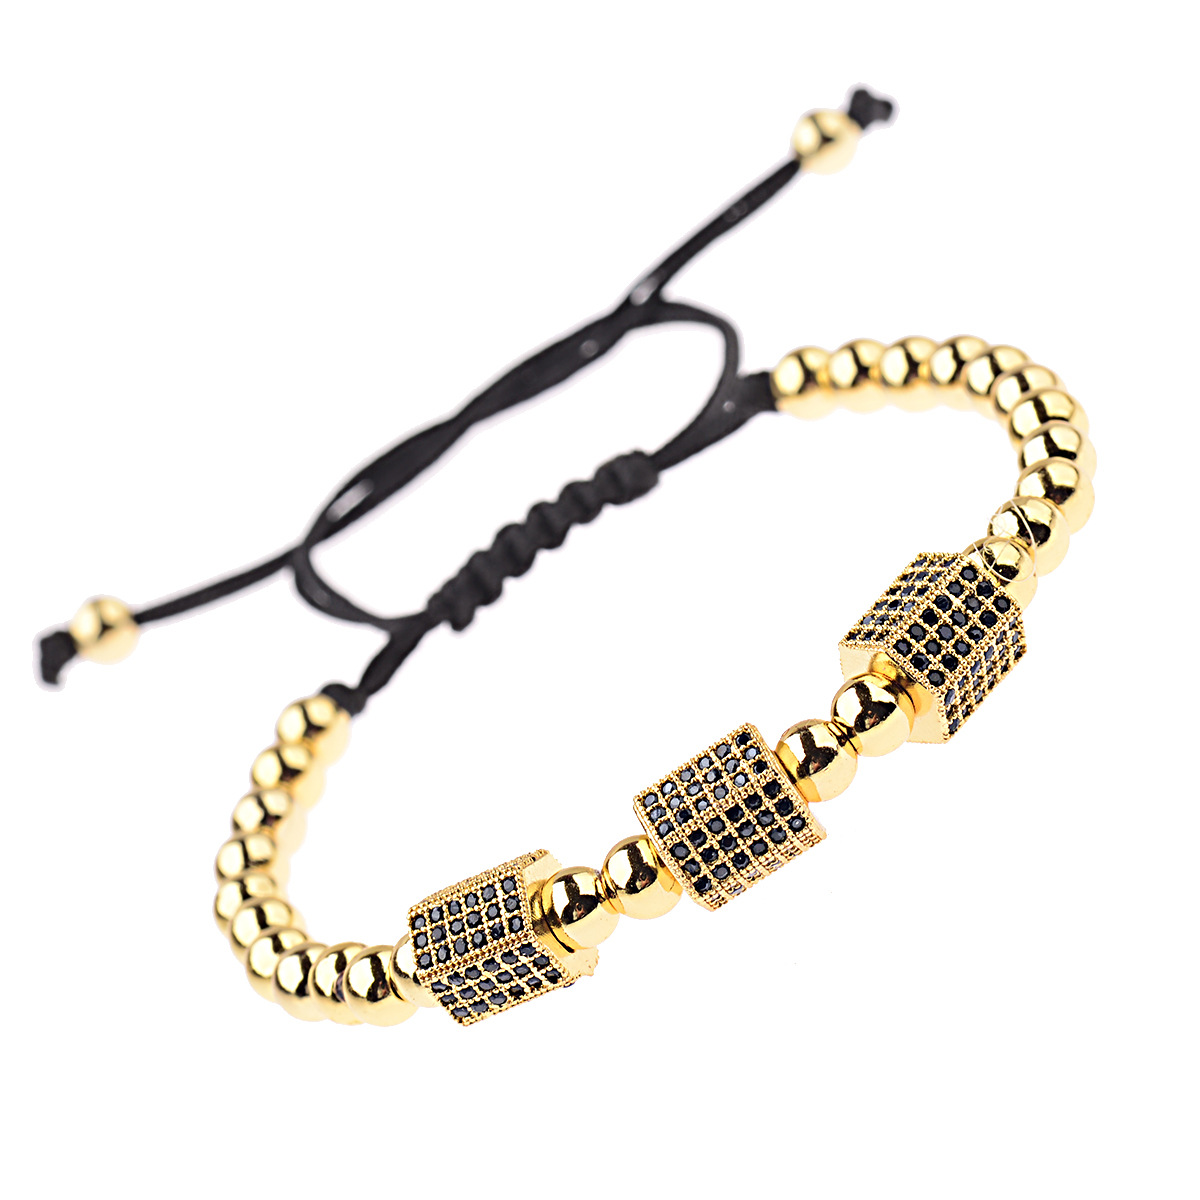 Handmade Micro Pave Cubic Zirconia CZ Column Charms Braided Bracelet Gold Plated Copper Beads Bracelet With Square Accessories